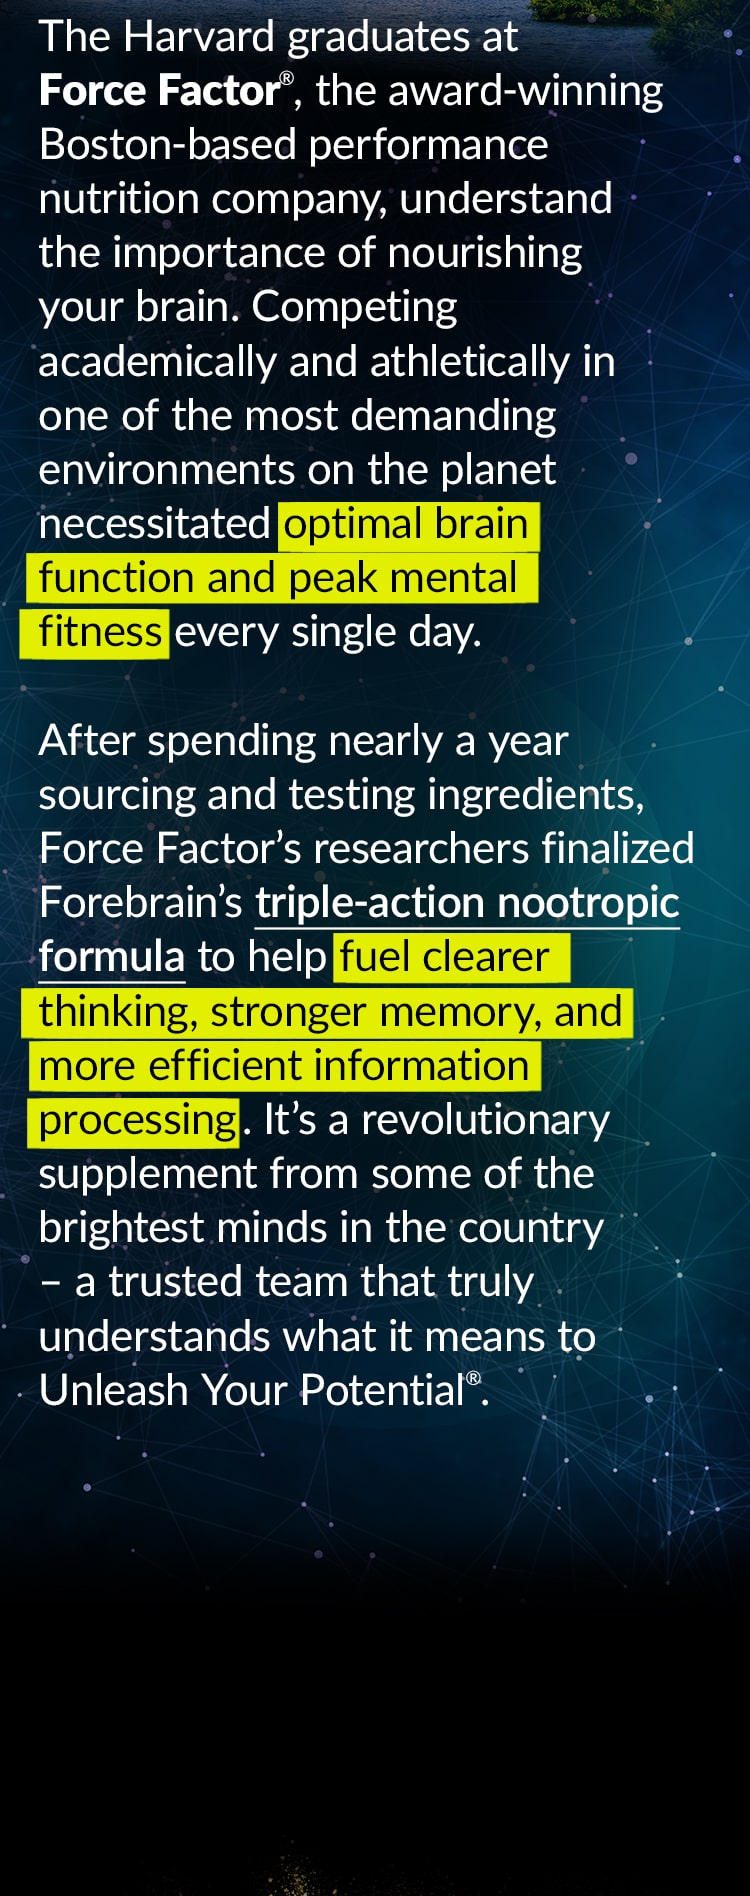 The Harvard graduates at Force Factor®, the award-winning Boston-based performance nutrition company, understand the importance of nourishing your brain. Competing academically and athletically in one of the most demanding environments on the planet necessitated optimal brain function and peak mental fitness every single day. After spending nearly a year sourcing and testing ingredients, Force Factor's researchers finalized Forebrain's triple-action nootropic formula to help fuel clearer thinking, stronger memory, and more efficient information processing. It's a revolutionary supplement from some of the brightest minds in the country – a trusted team that truly understands what it means to Unleash Your Potential®.